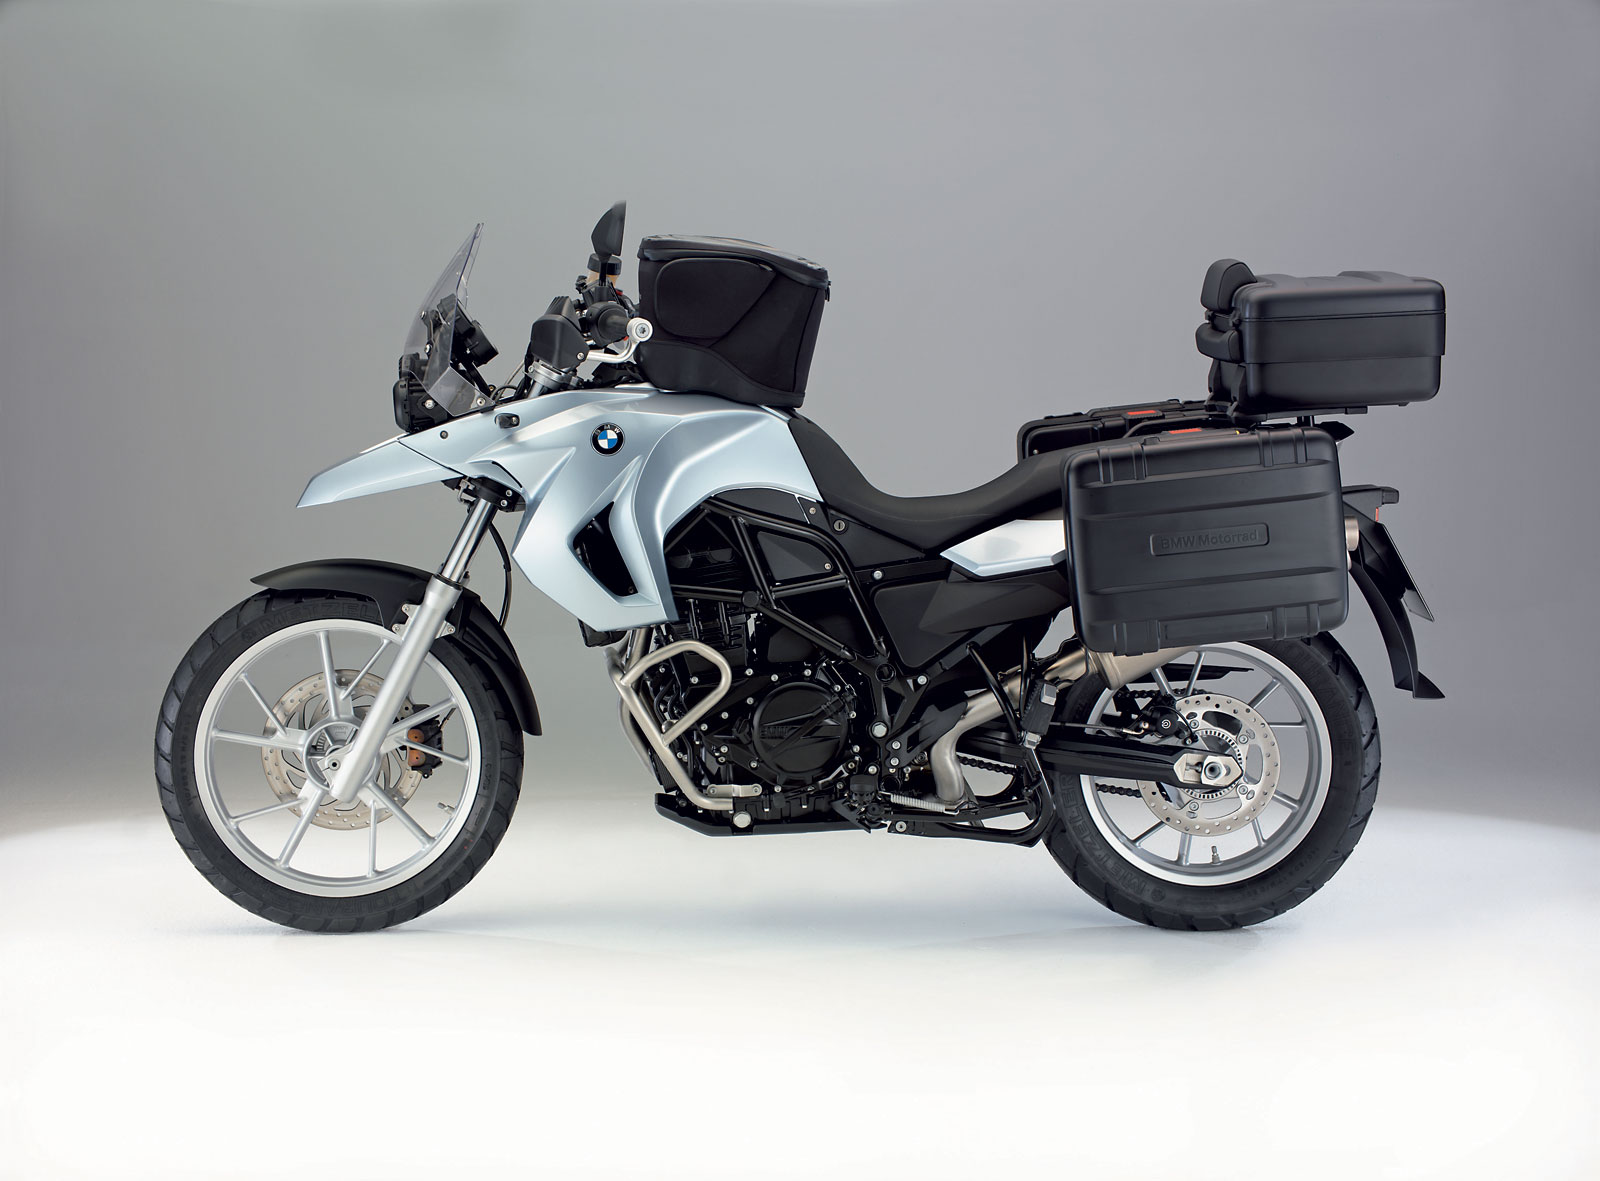 BMW G 650 GS images #8860